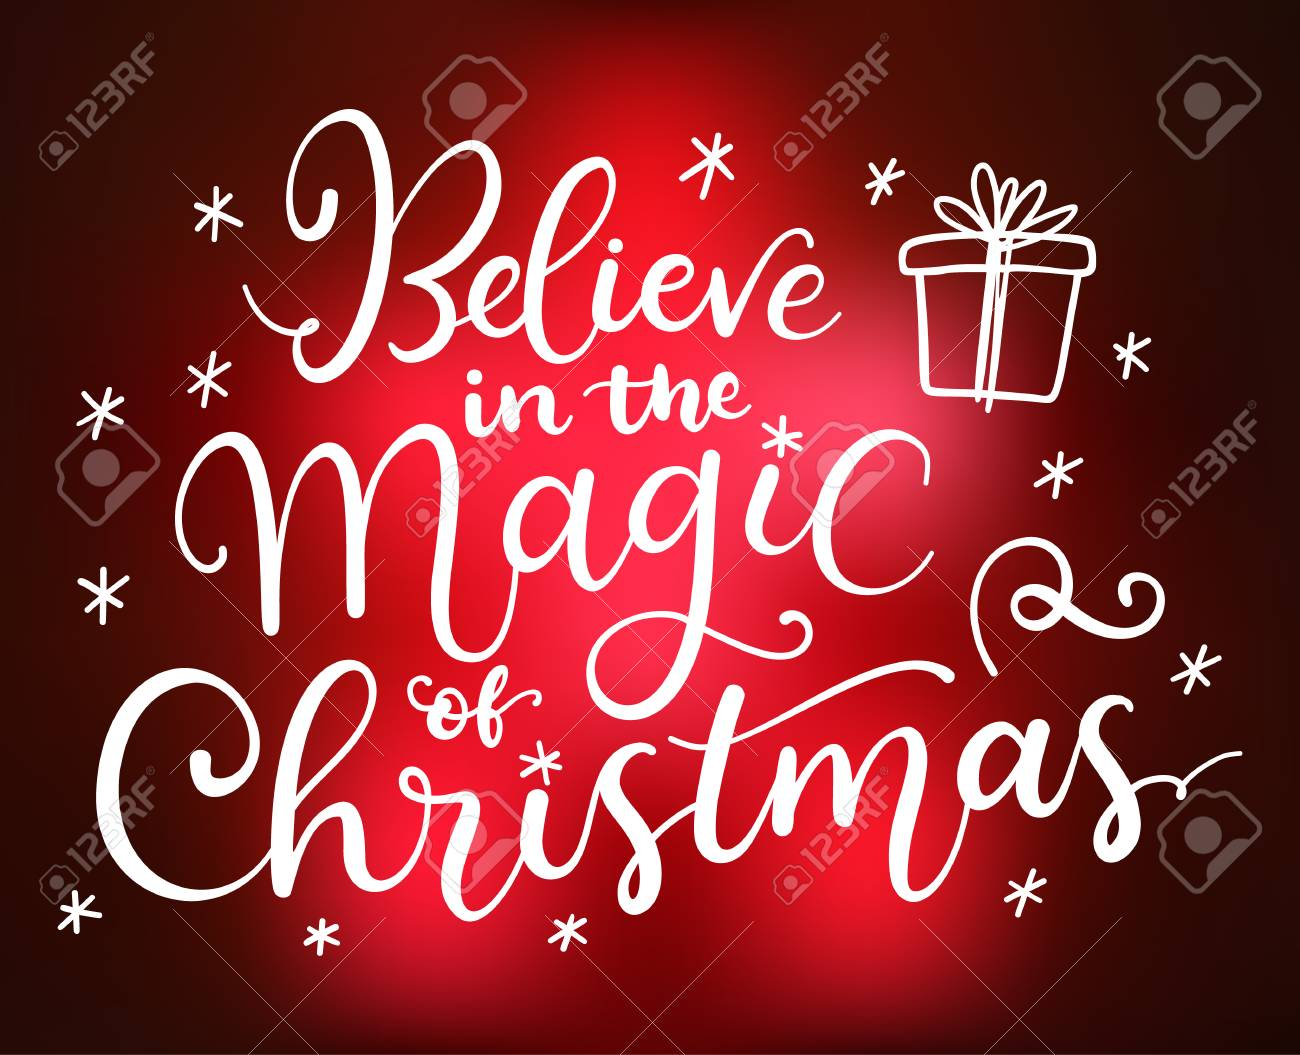 I Believe In Christmas.Believe In The Magic Of Christmas Vector Greeting Card With